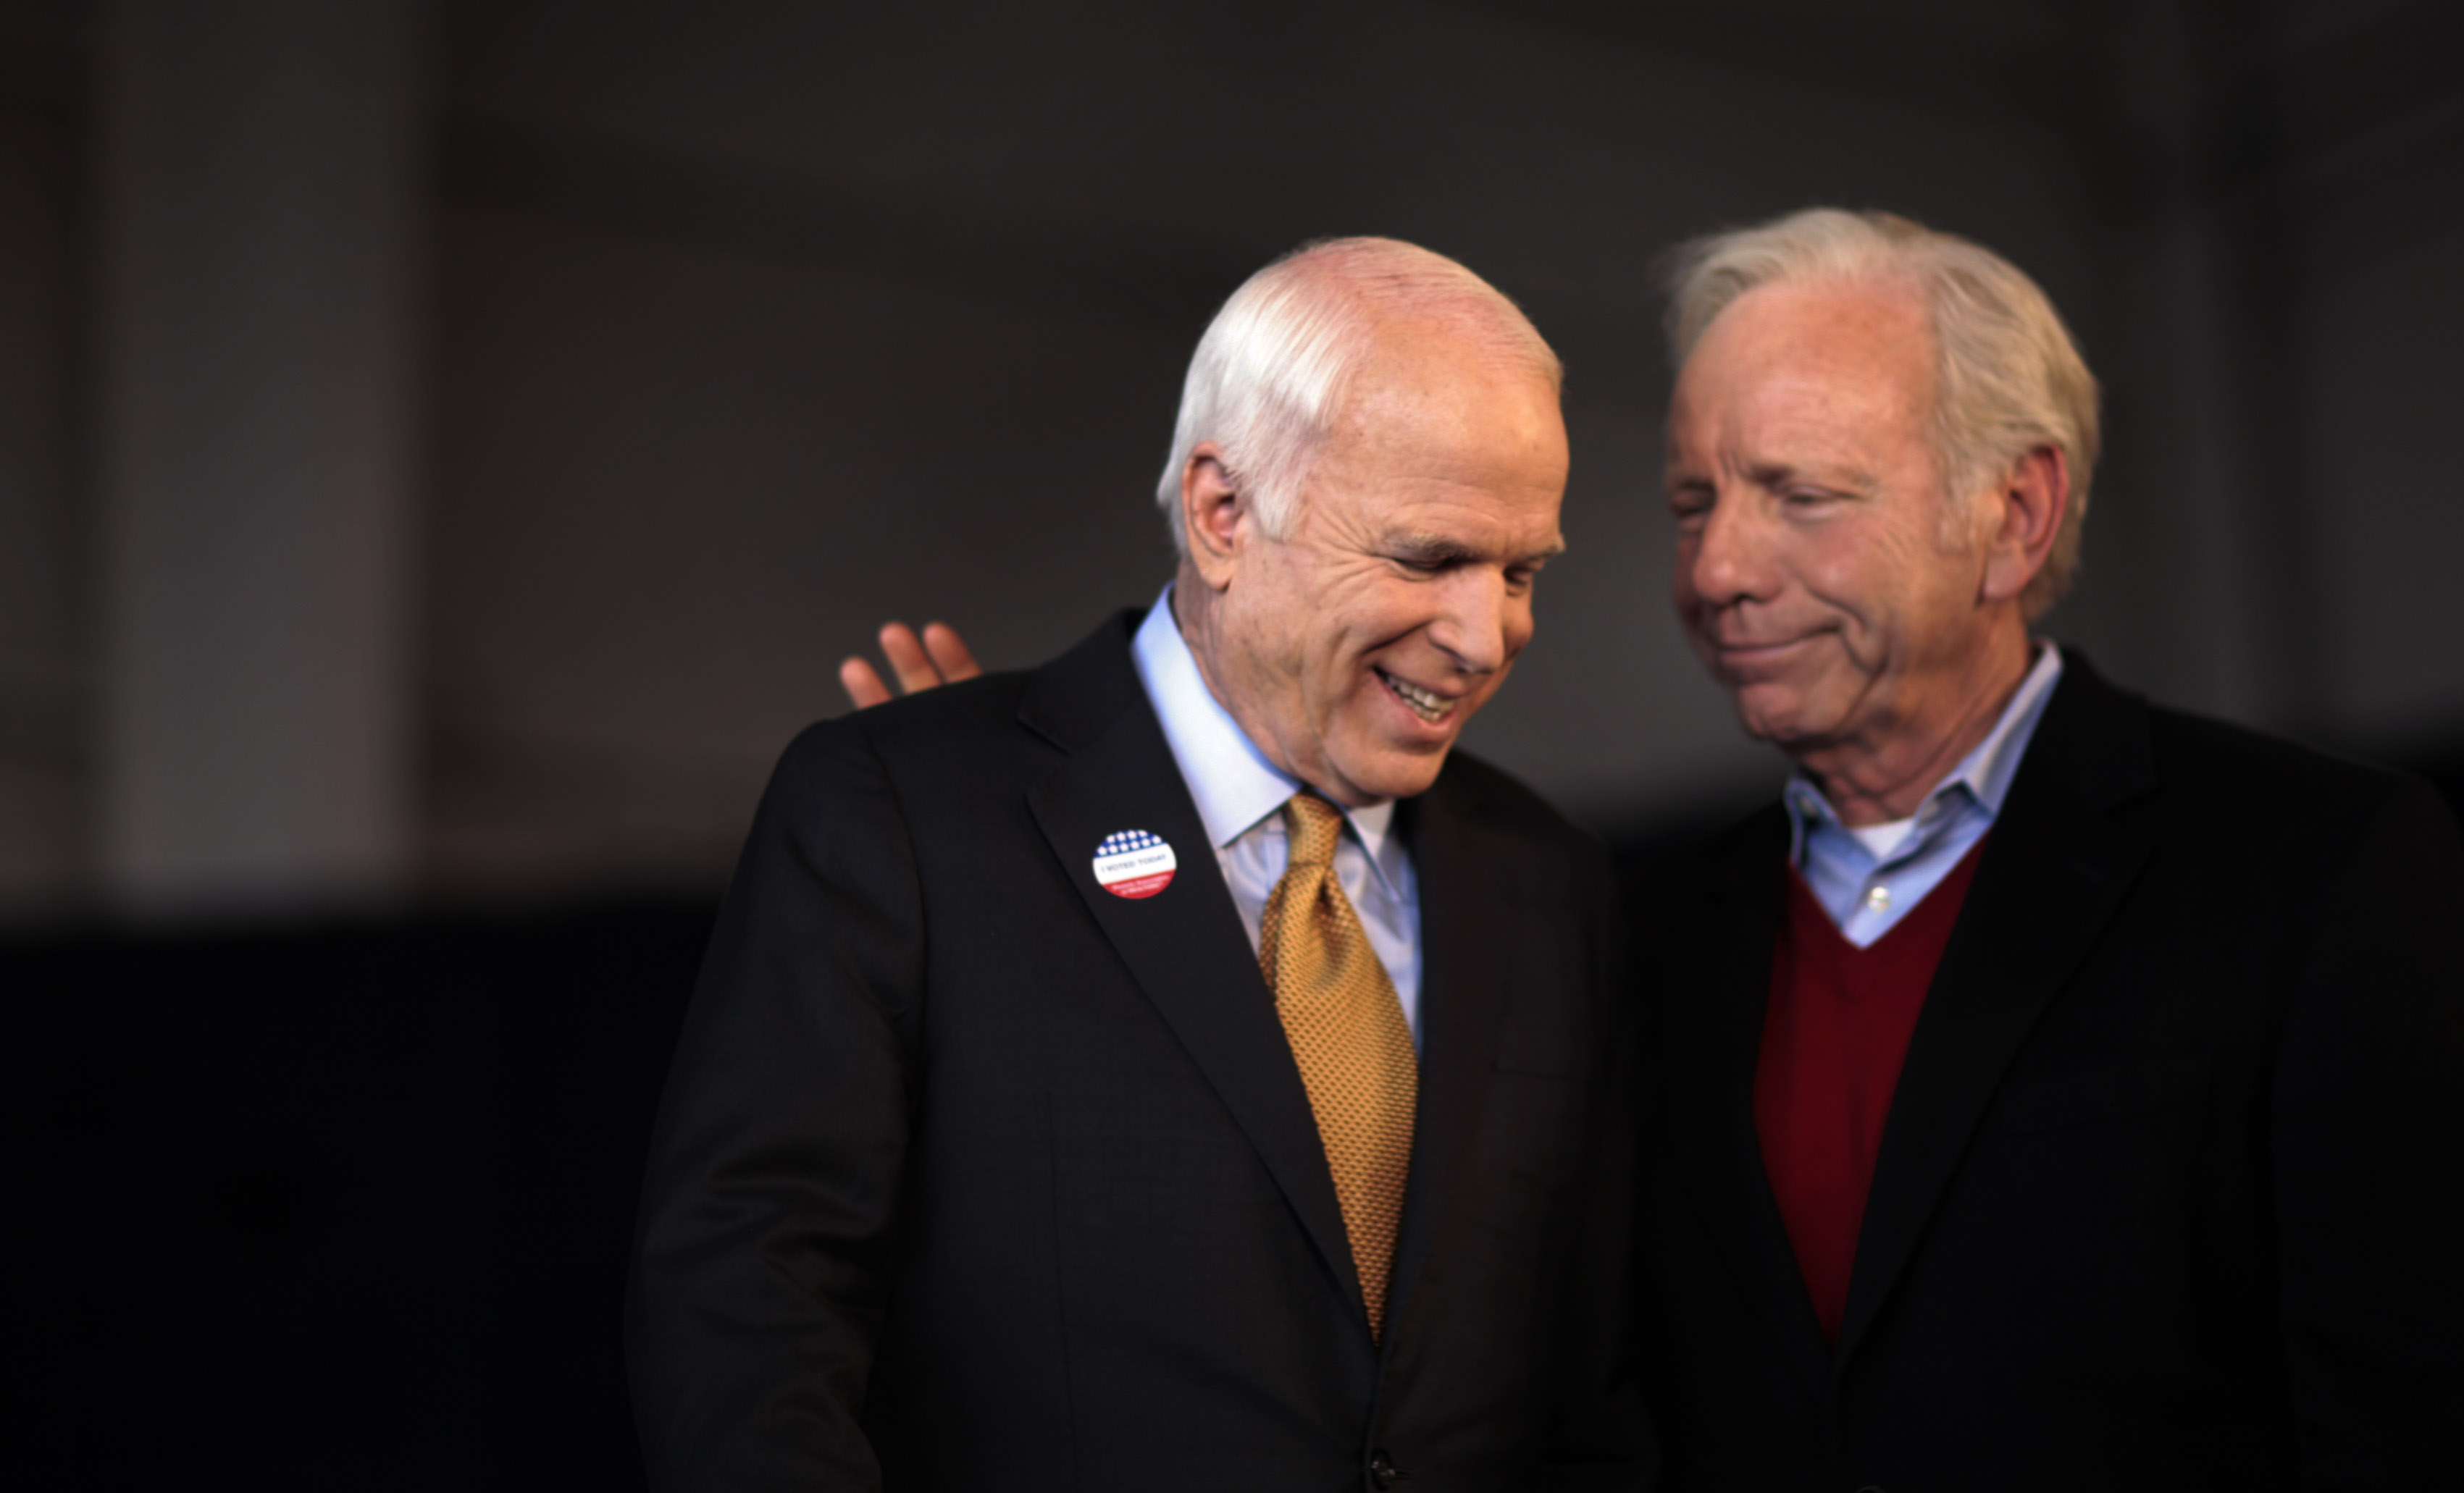 John McCain probably wouldn't have responded to Trump's comments. As his friend, I will.